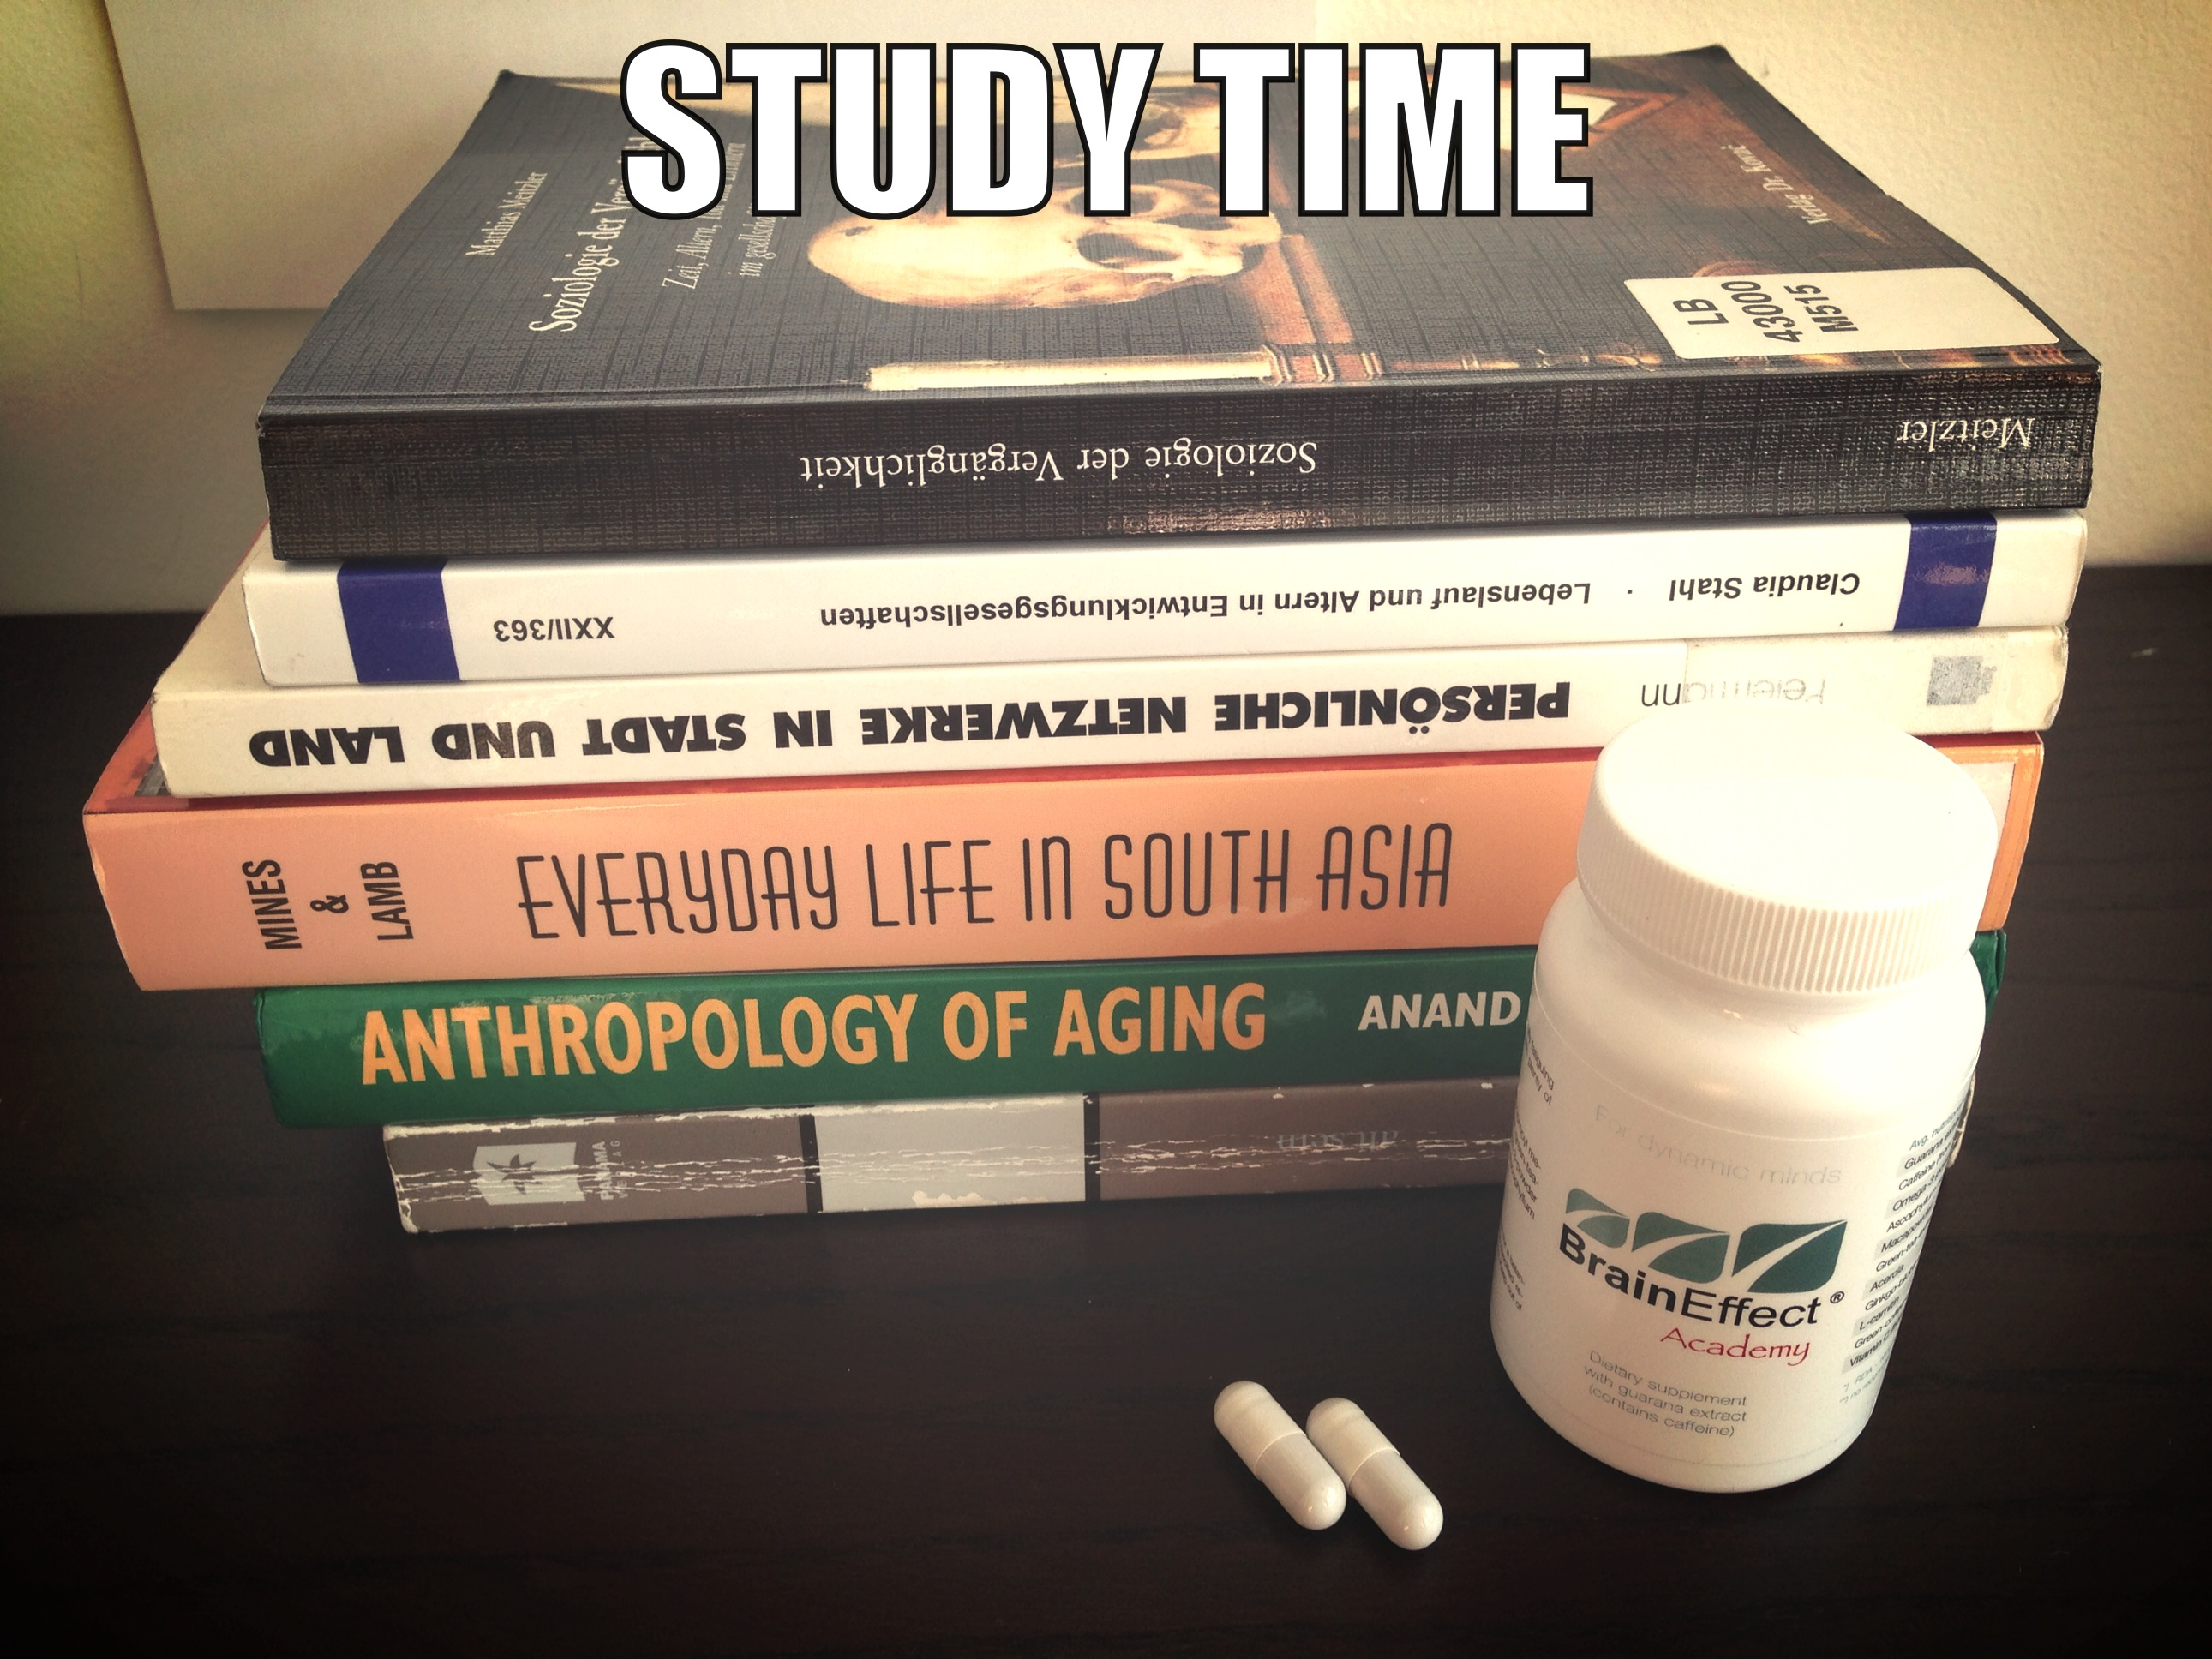 Time to study!